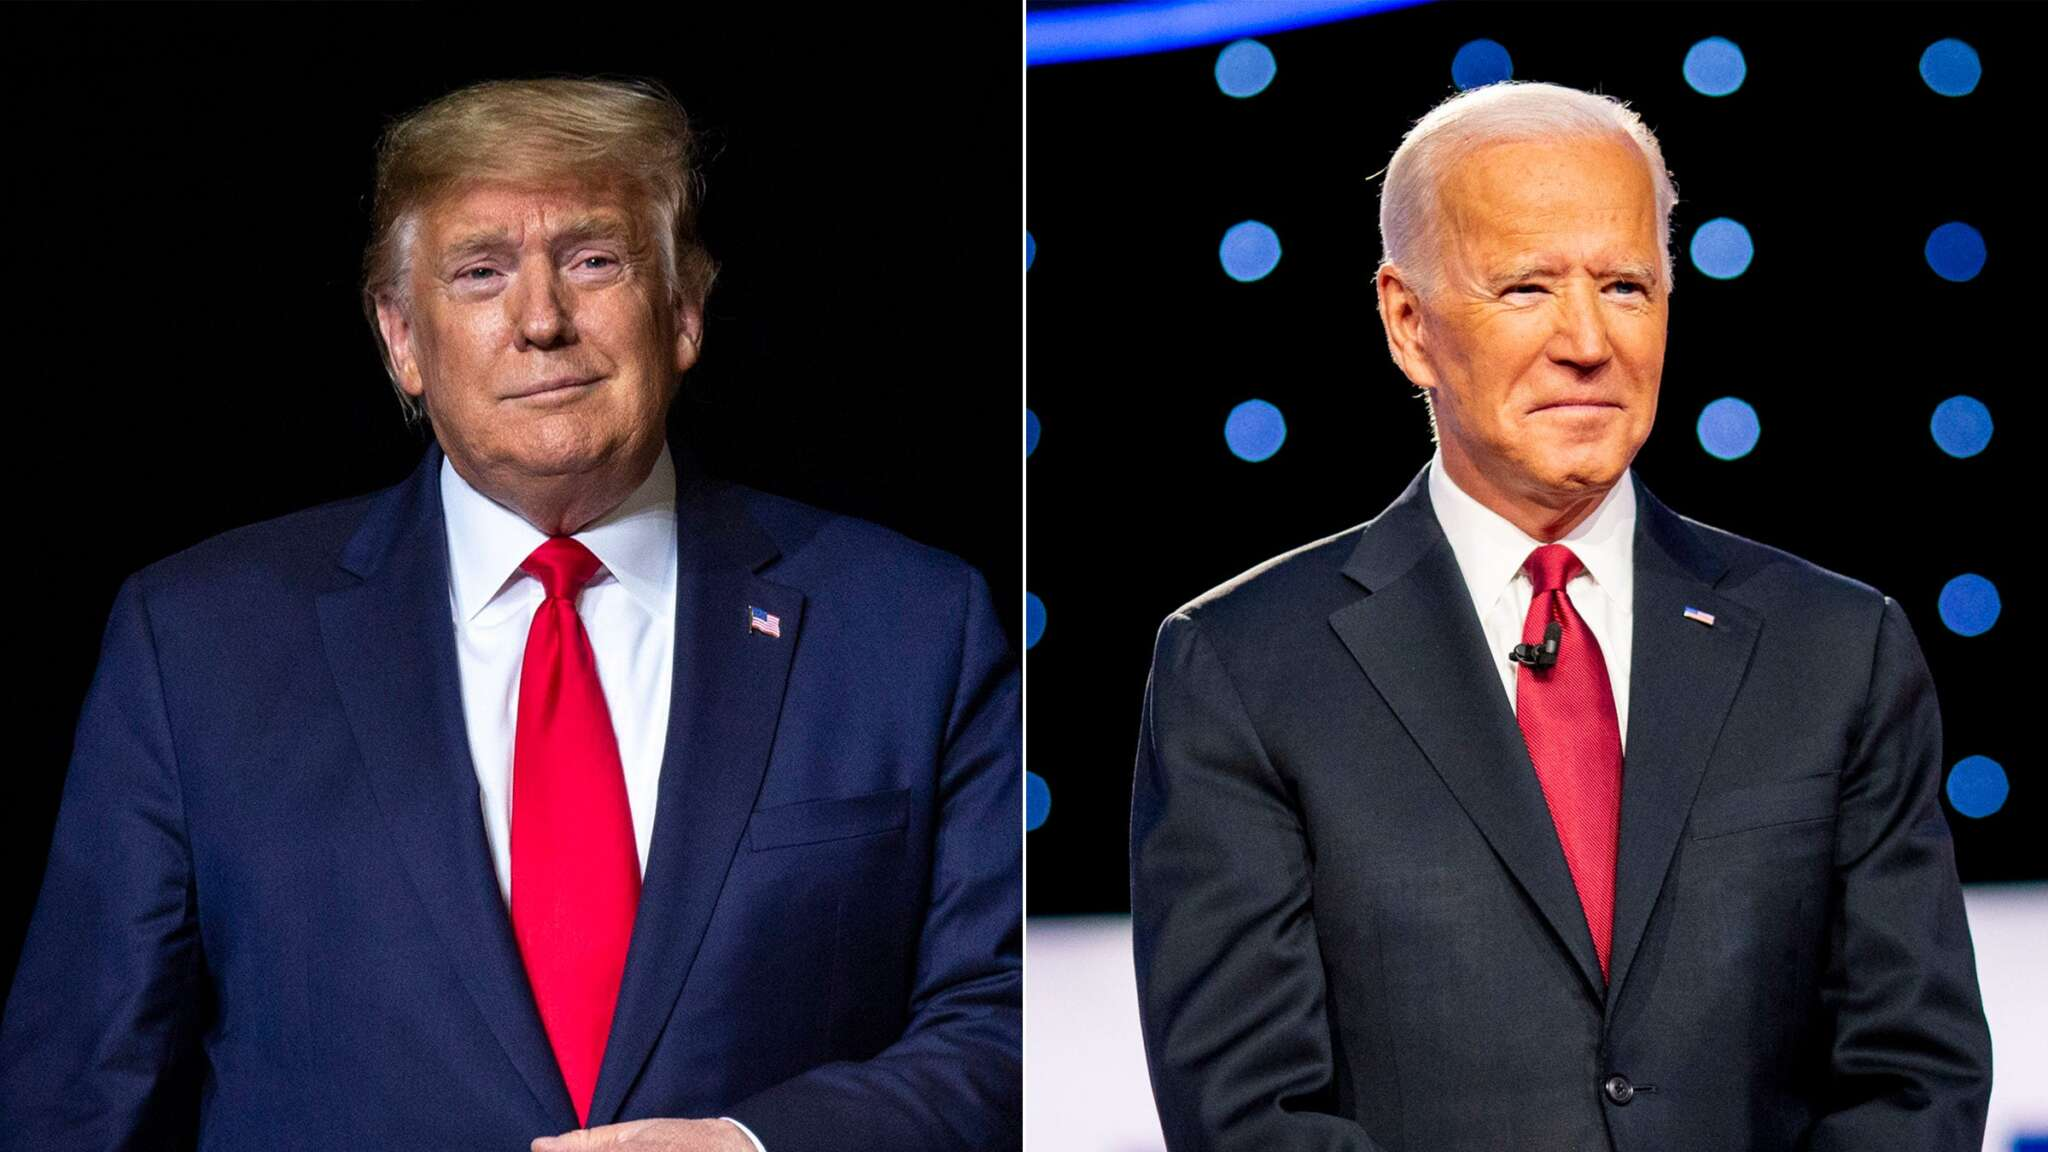 Donald Trump Says He Won't Be At Joe Biden's Inauguration And The President-Elect Claps Back – That's 'A Good Thing!'